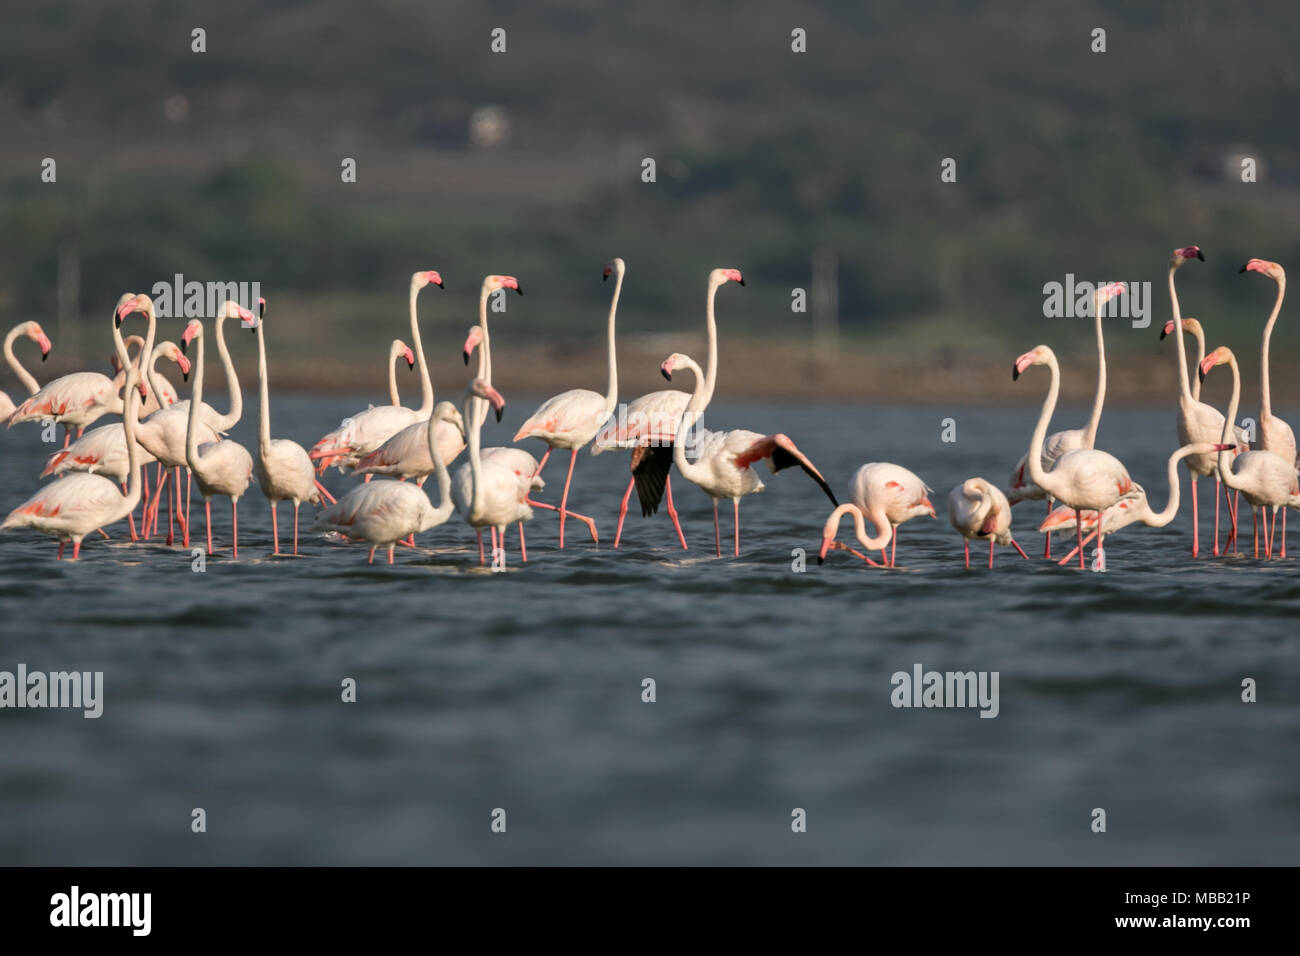 The greater flamingo (Phoenicopterus roseus) found around Pune at Bhigwan Bird Sanctuary, Maharashtra, India. - Stock Image